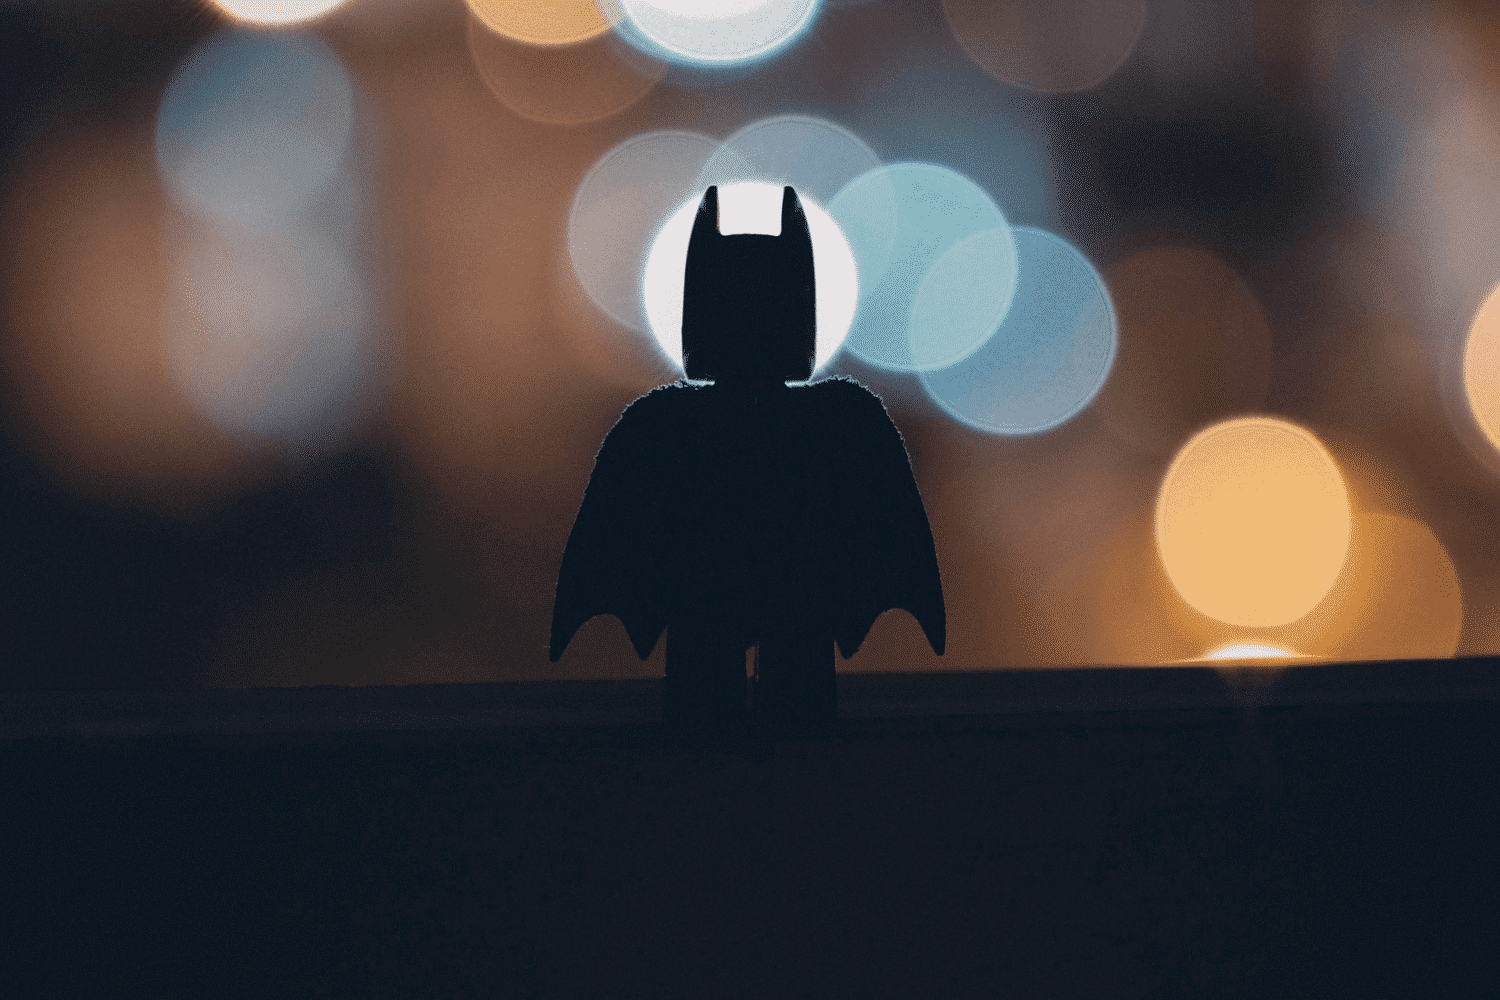 A silhouette of Lego Batman - consultants are like hero's that get dropped in to solve problems